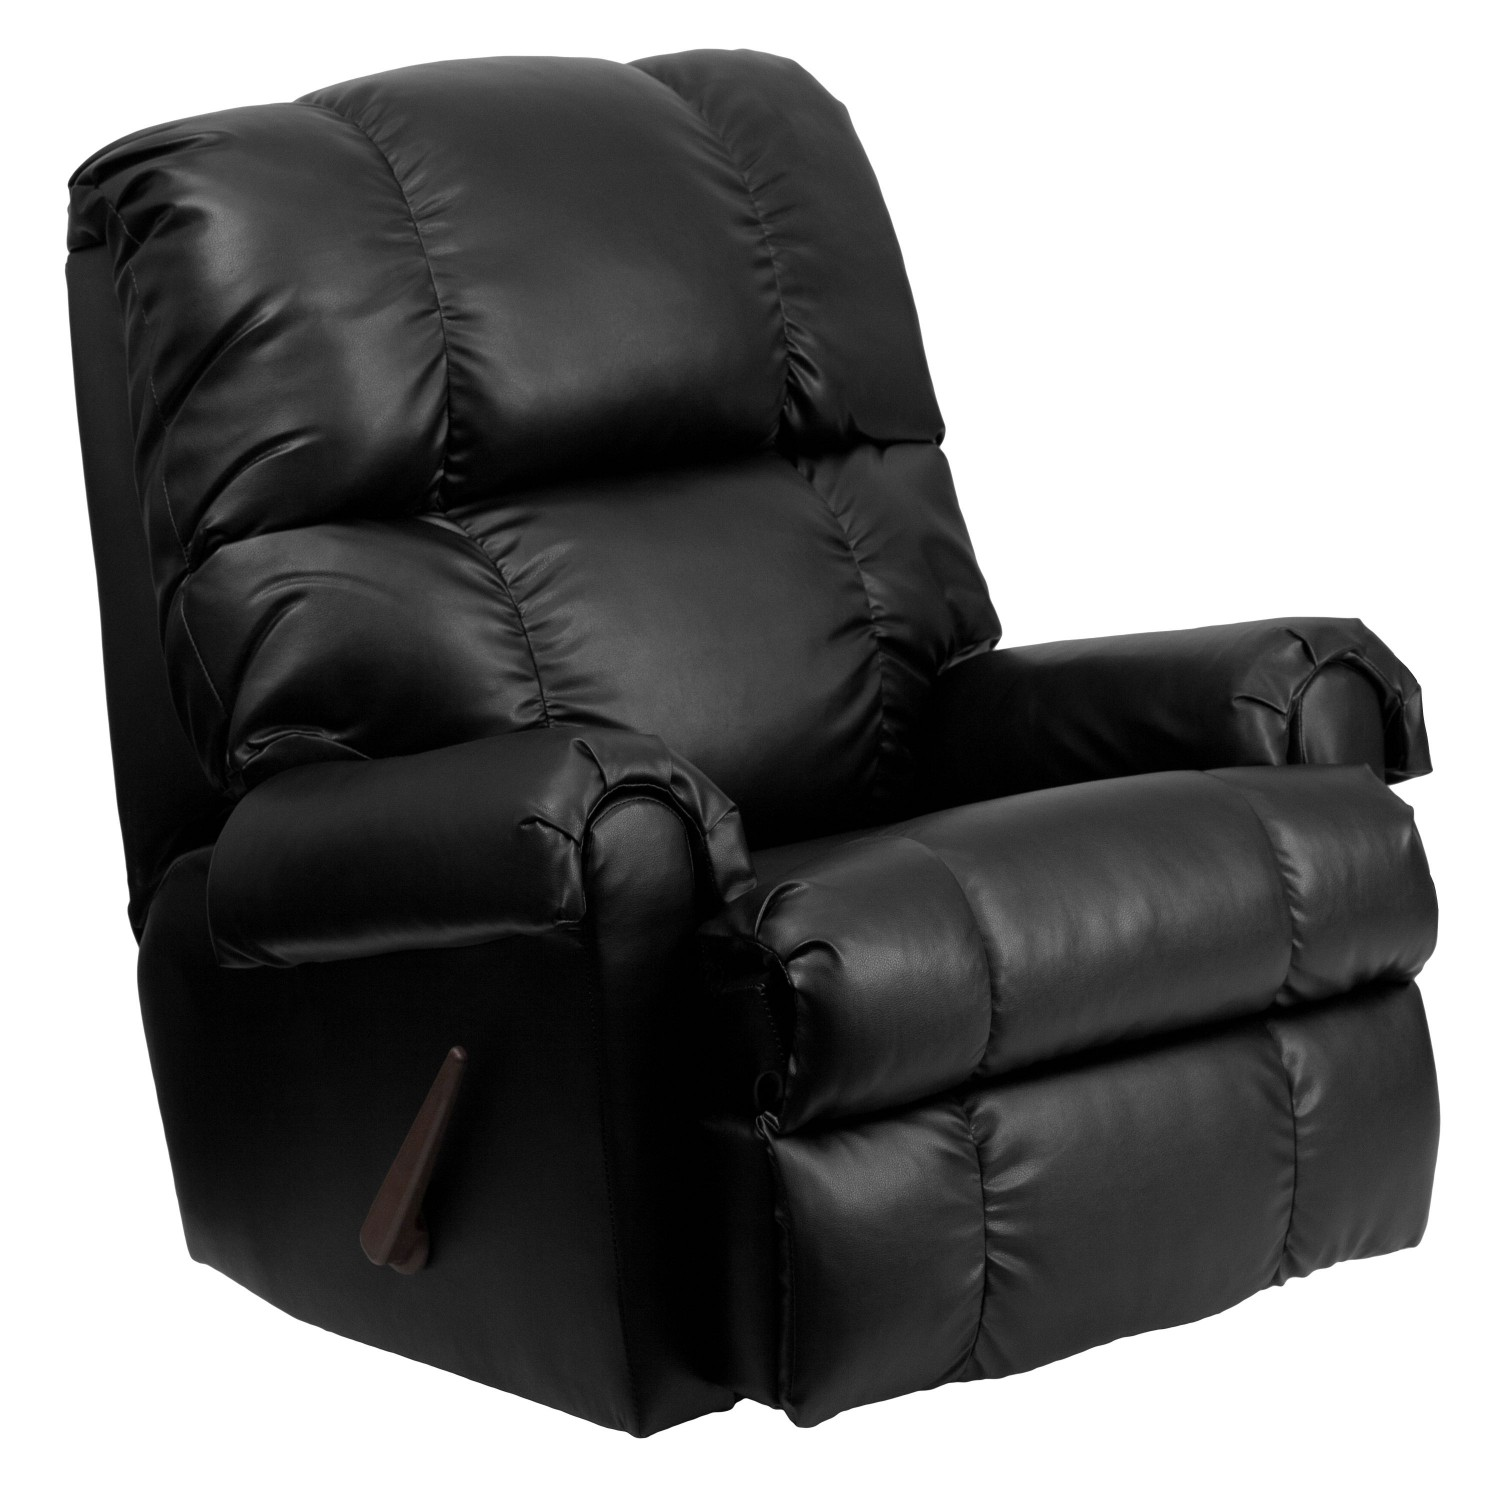 Flash Furniture WM-8700-371-GG Contemporary Apache Black Leather Rocker Recliner